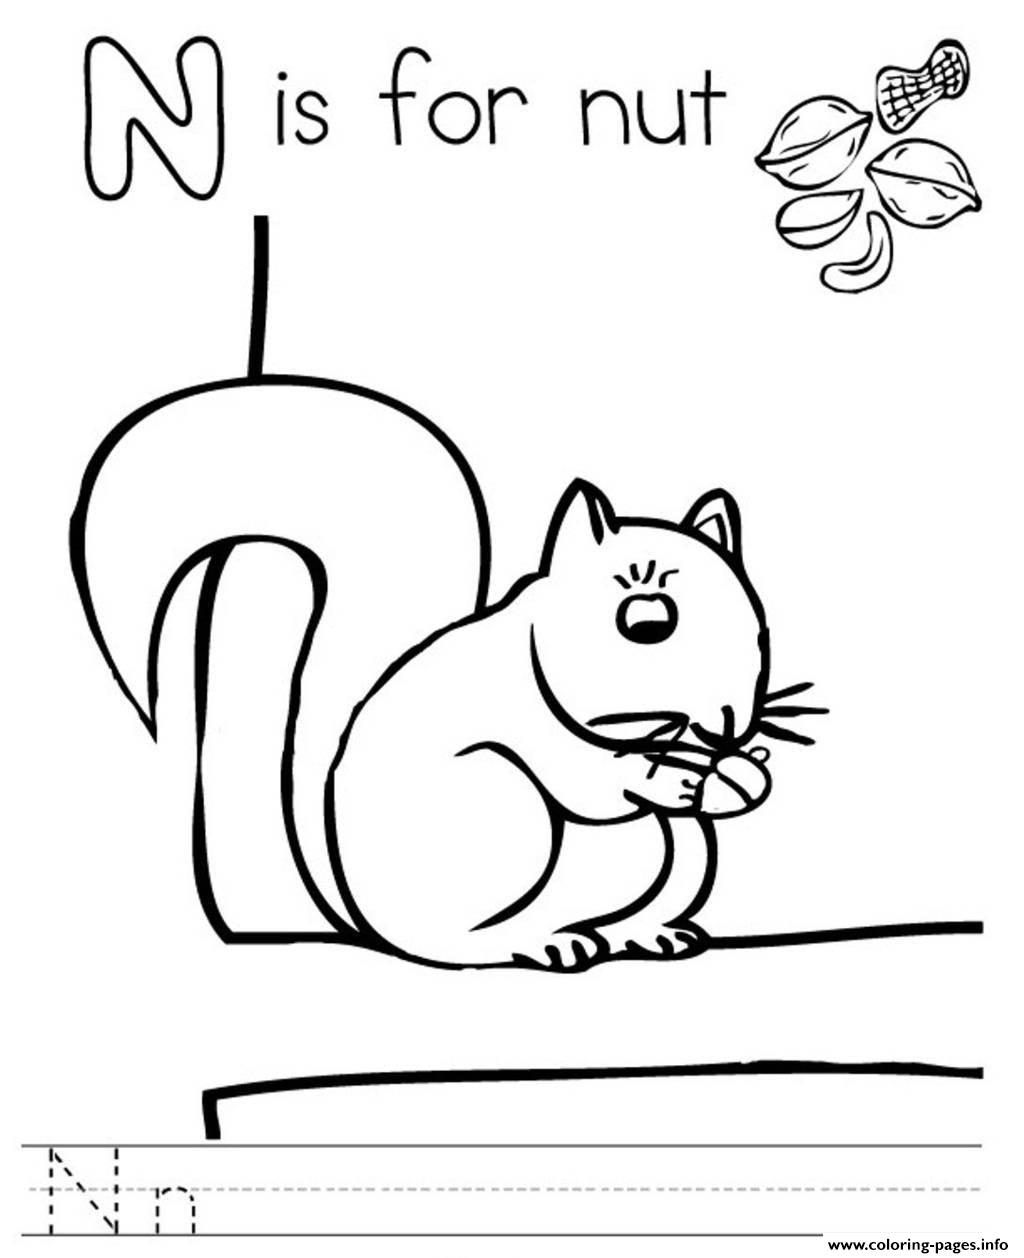 Nuts Coloring Coloring Pages